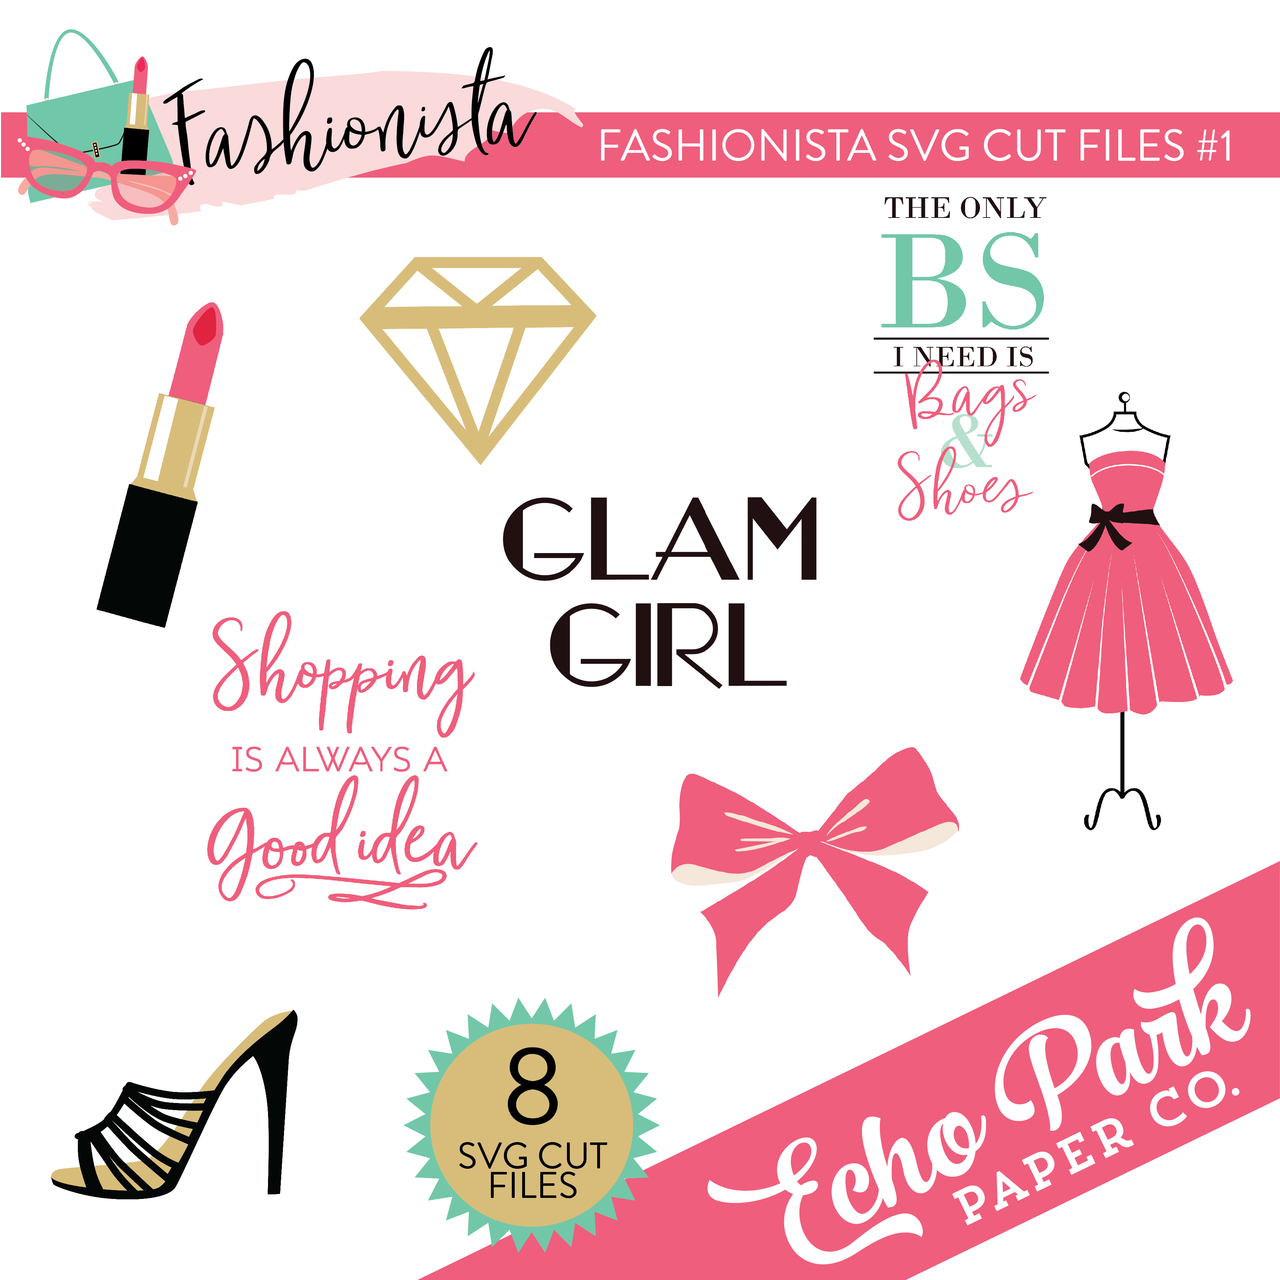 Fashionista SVG Cut Files #1